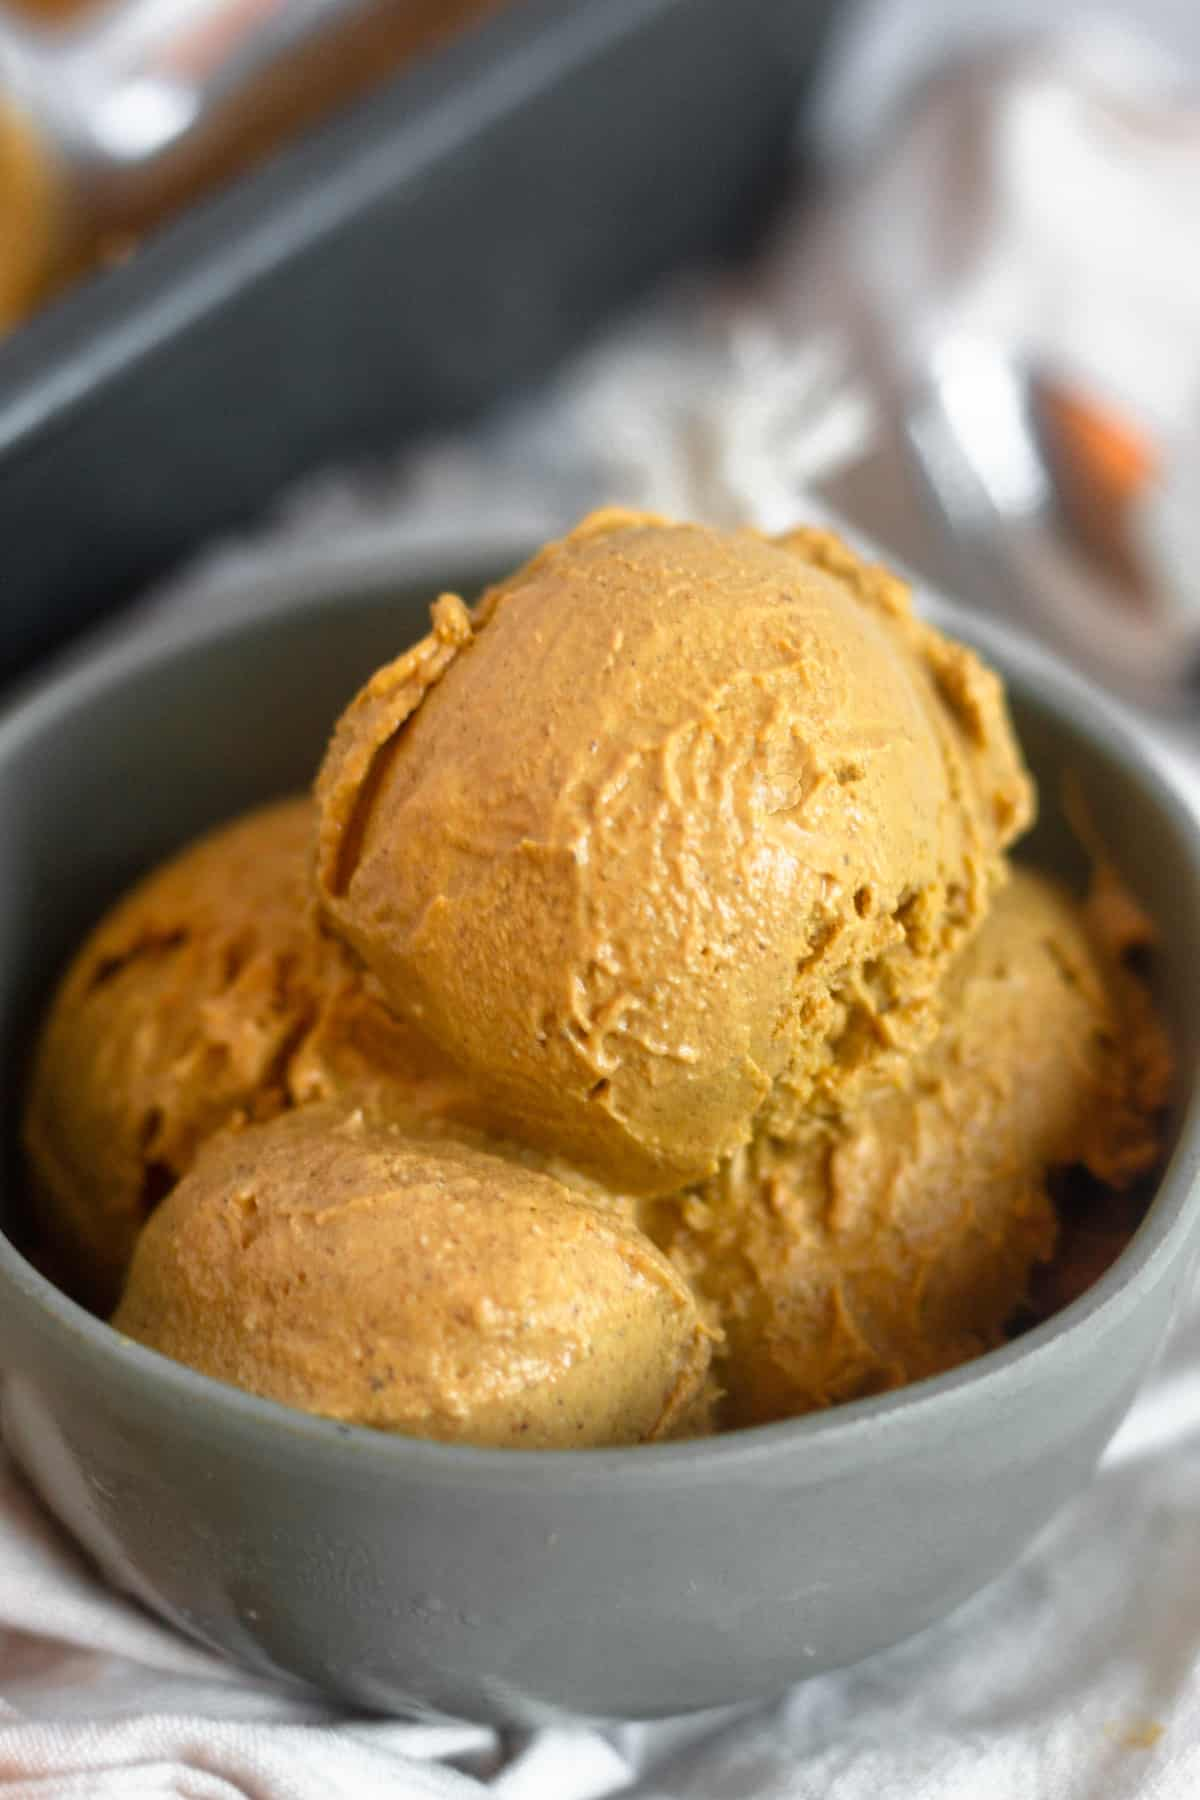 Small green bowl filled with dairy free paleo pumpkin ice cream sitting on a tan linen